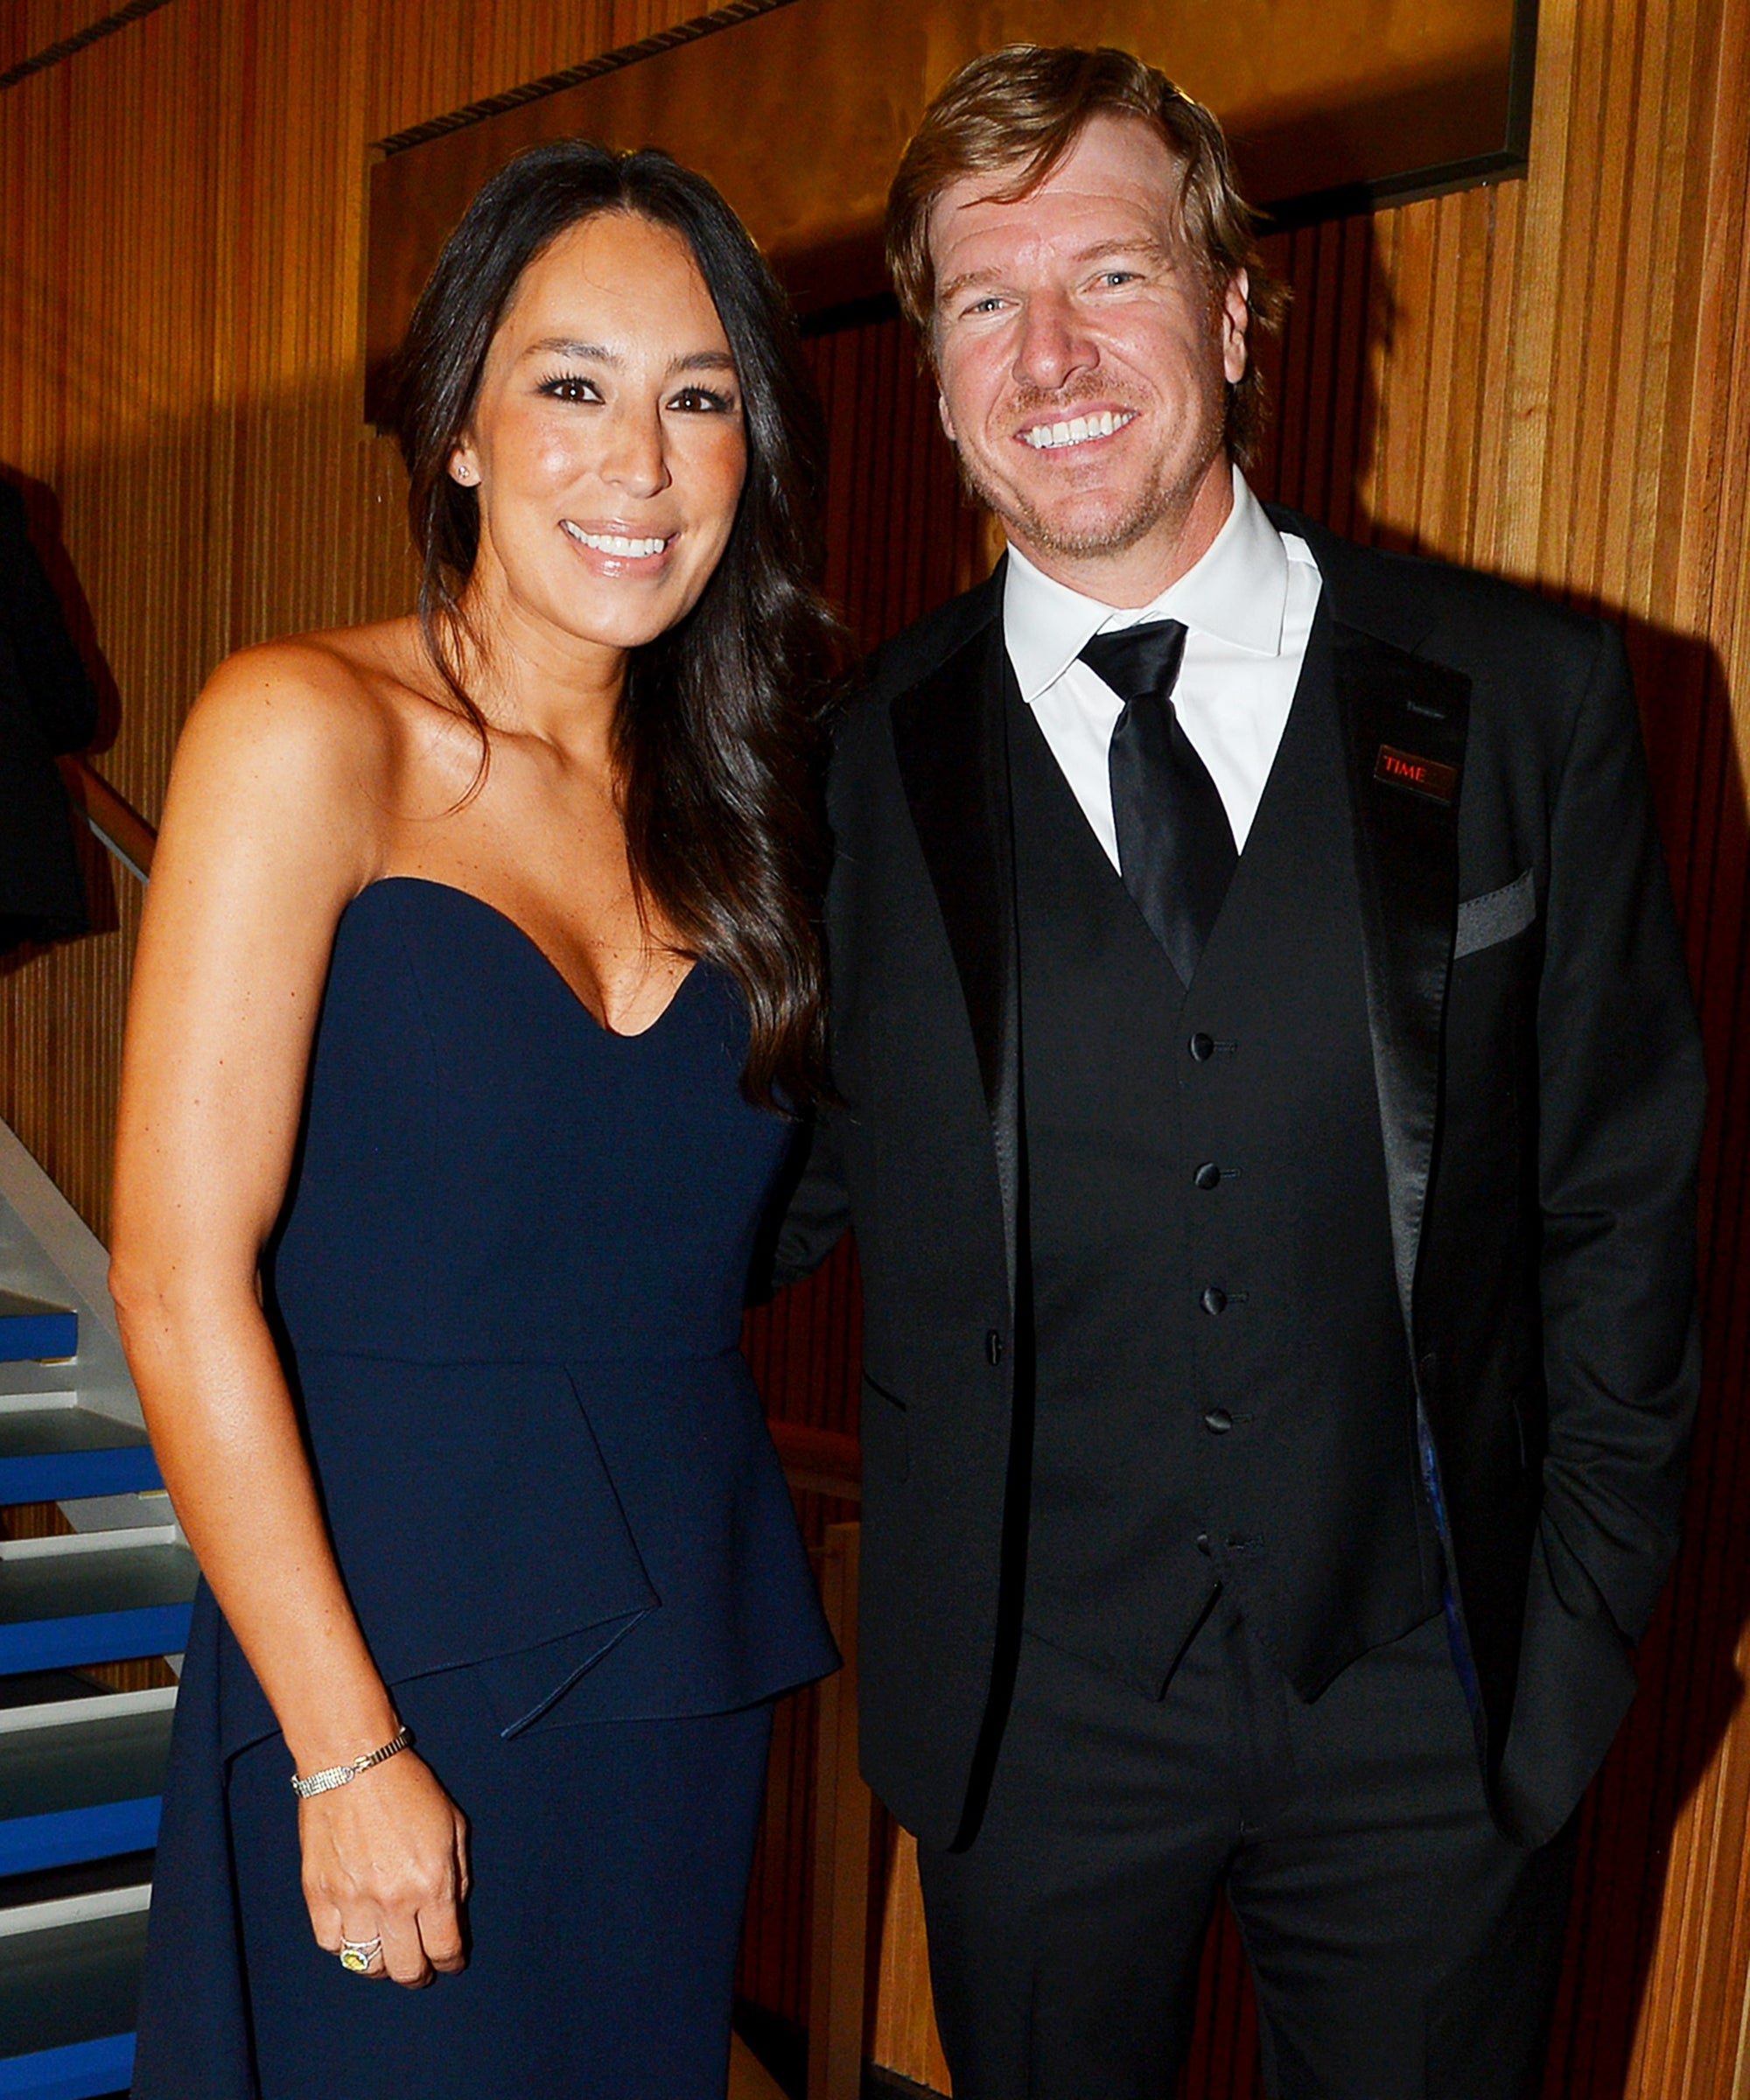 Chip & Joanna Gaines Are Building A Hotel In Waco, Texas